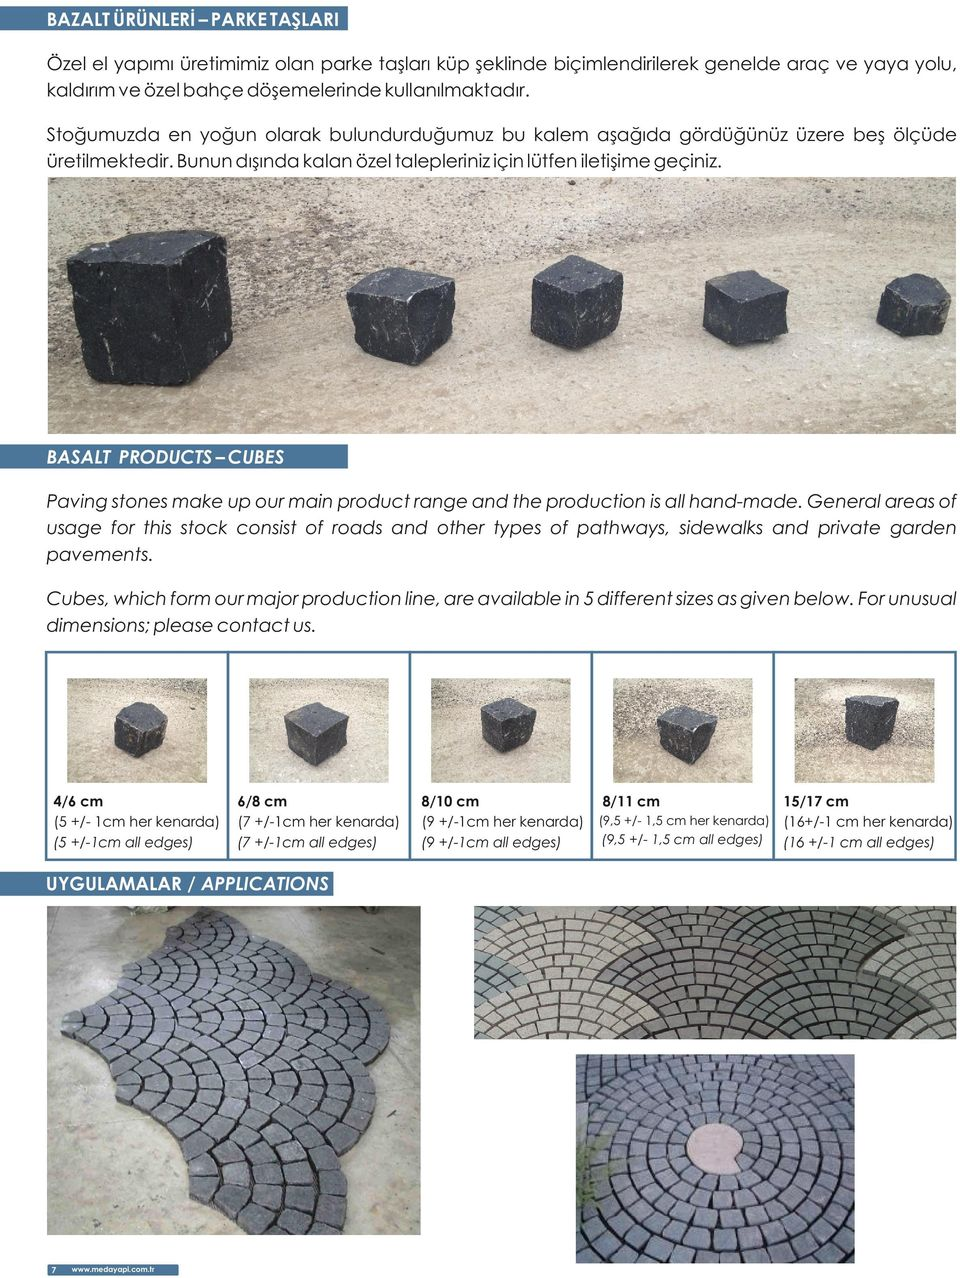 BASALT PRODUCTS CUBES Paving stones make up our main product range and the production is all hand-made.